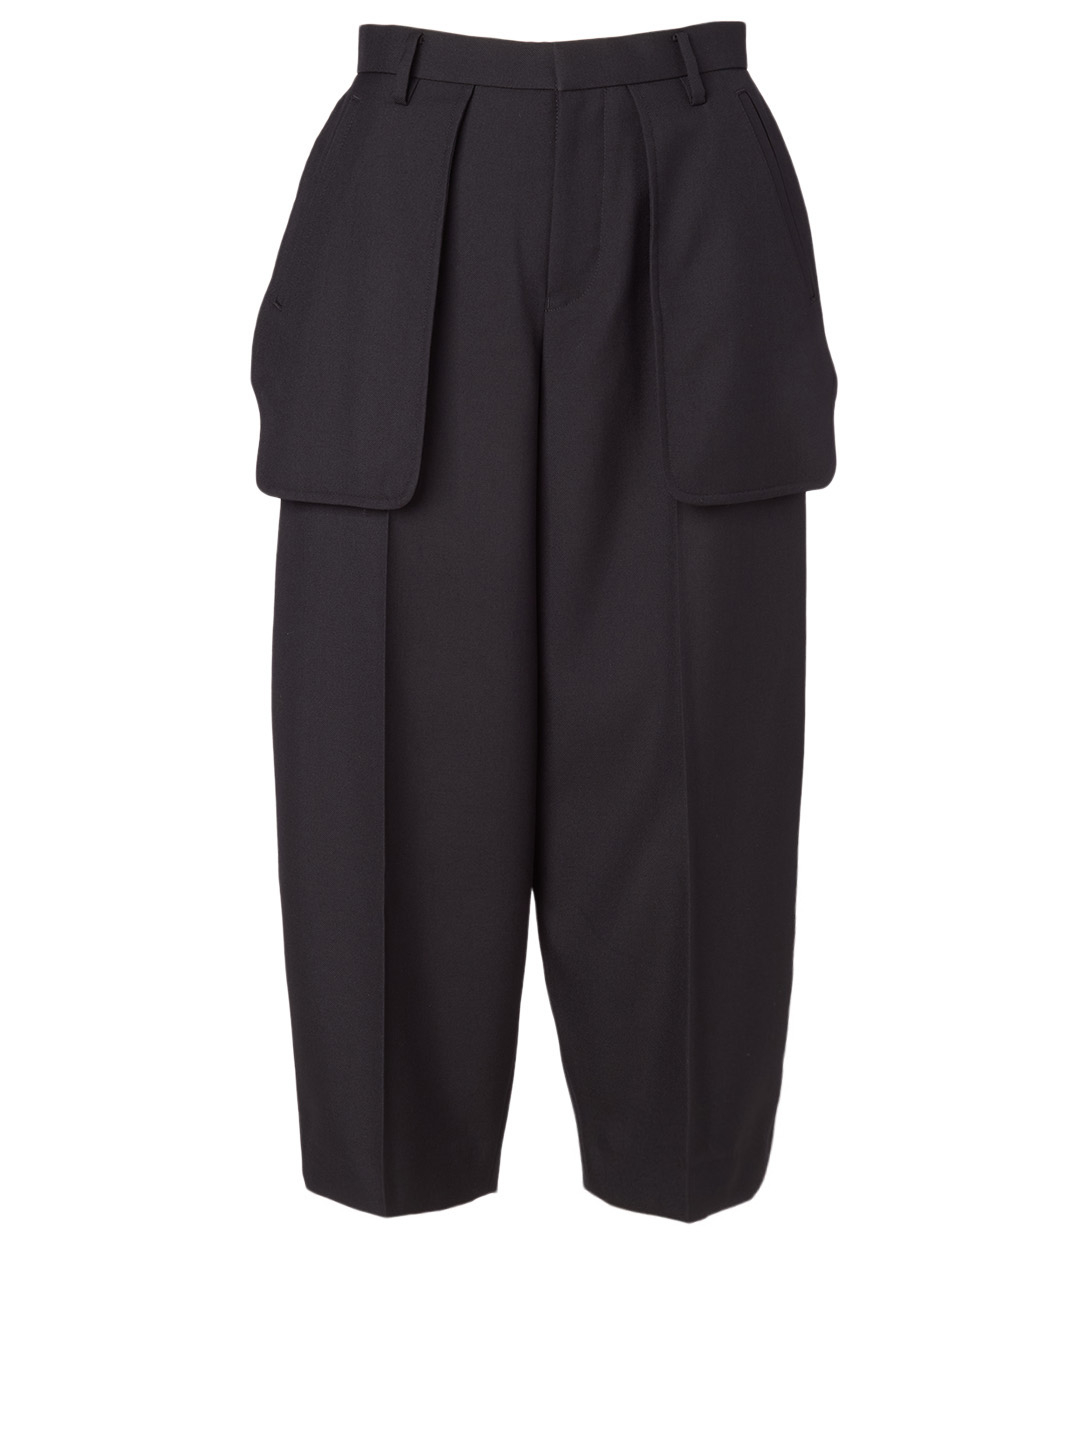 NOIR KEI NINOMIYA Wool-Blend Pocket Pants Women's Black